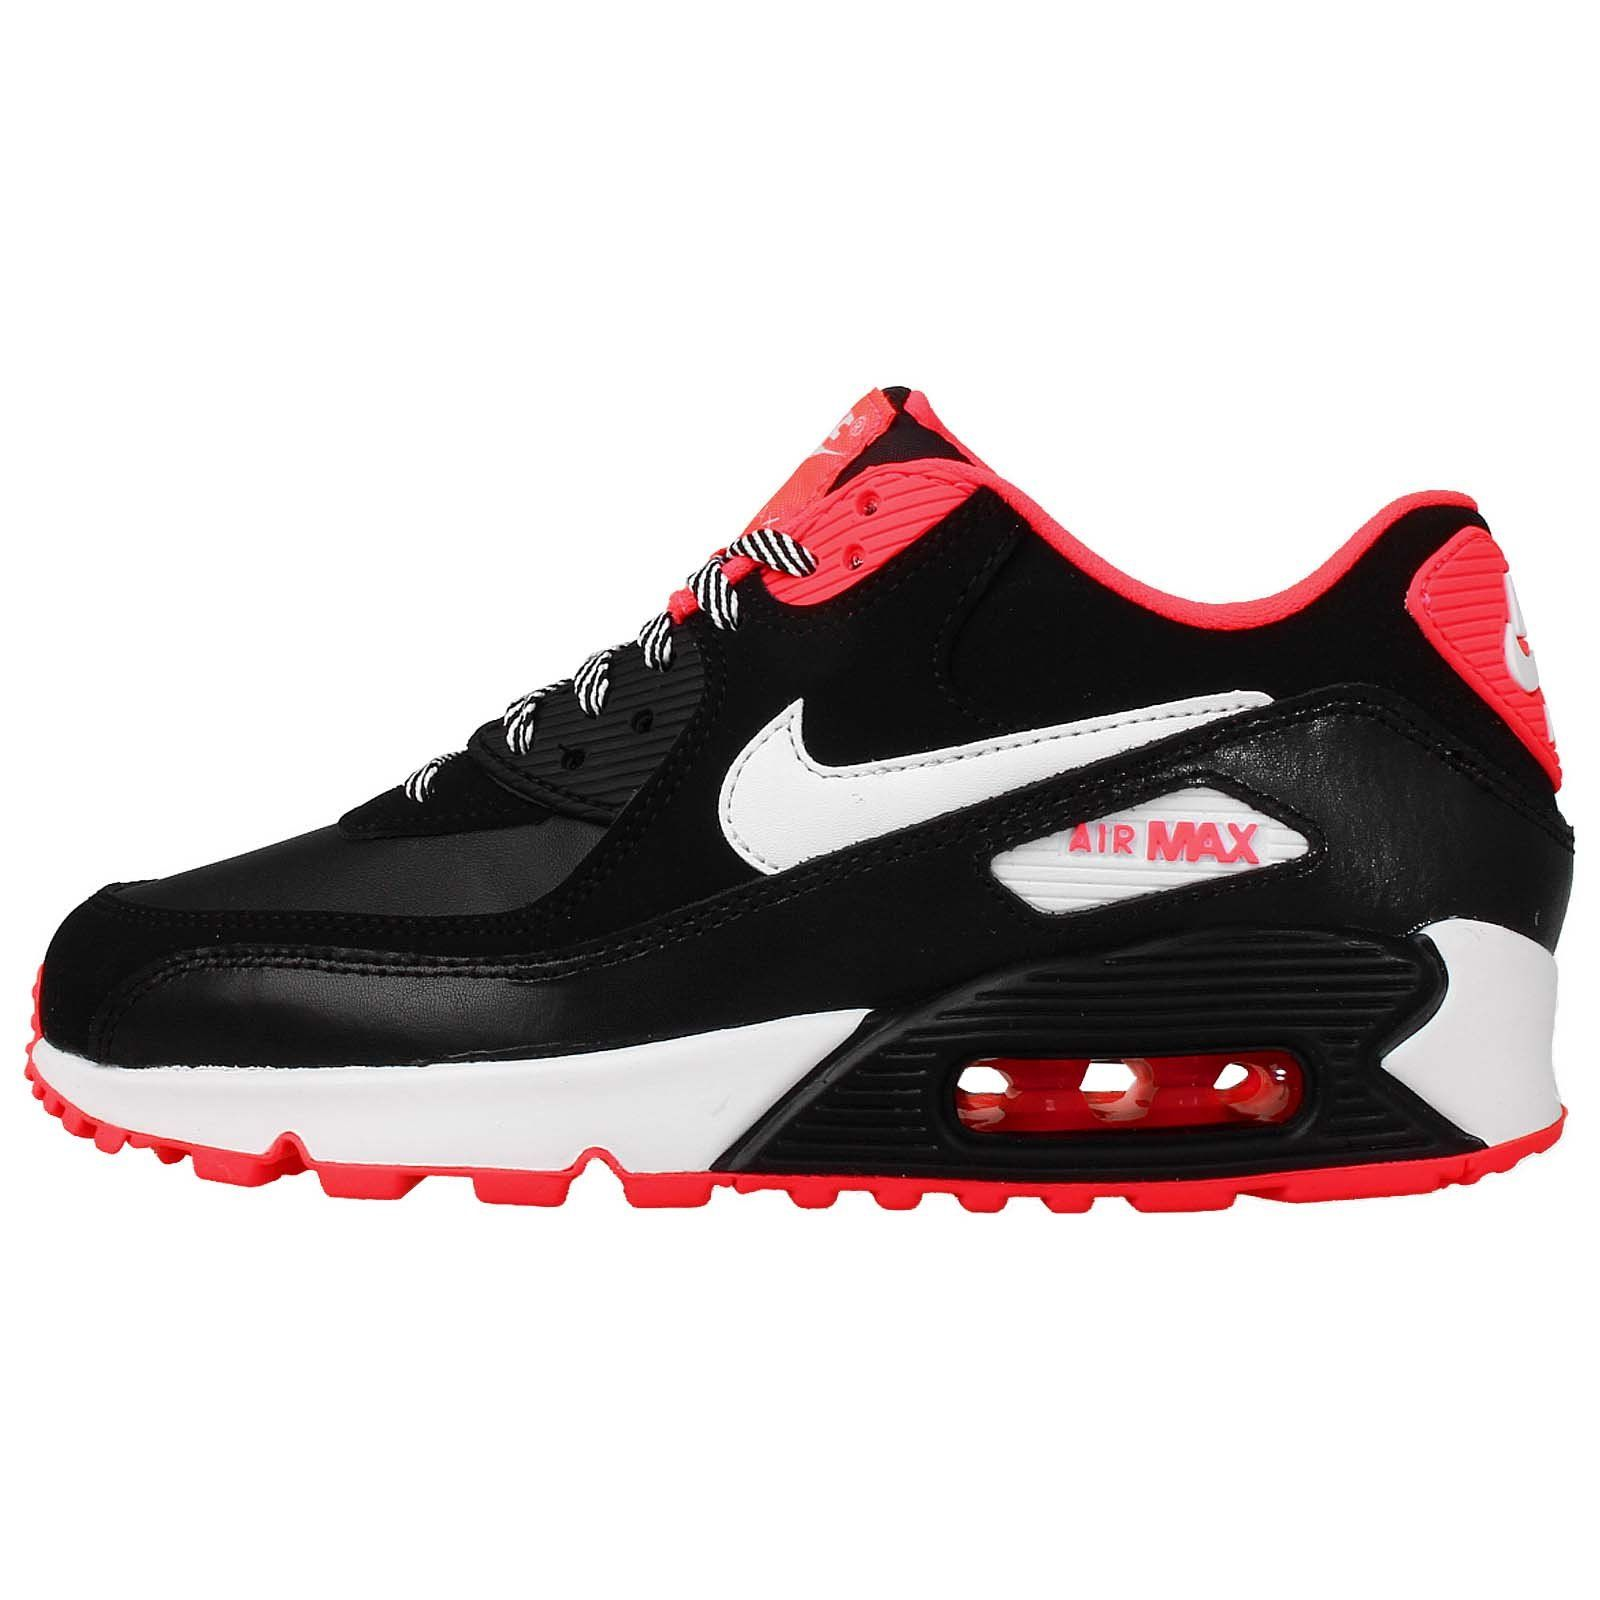 bf49e30ba205 Amazon.com  Nike Air Max 90 (GS) Big Kid s Running Shoes  Clothing ...